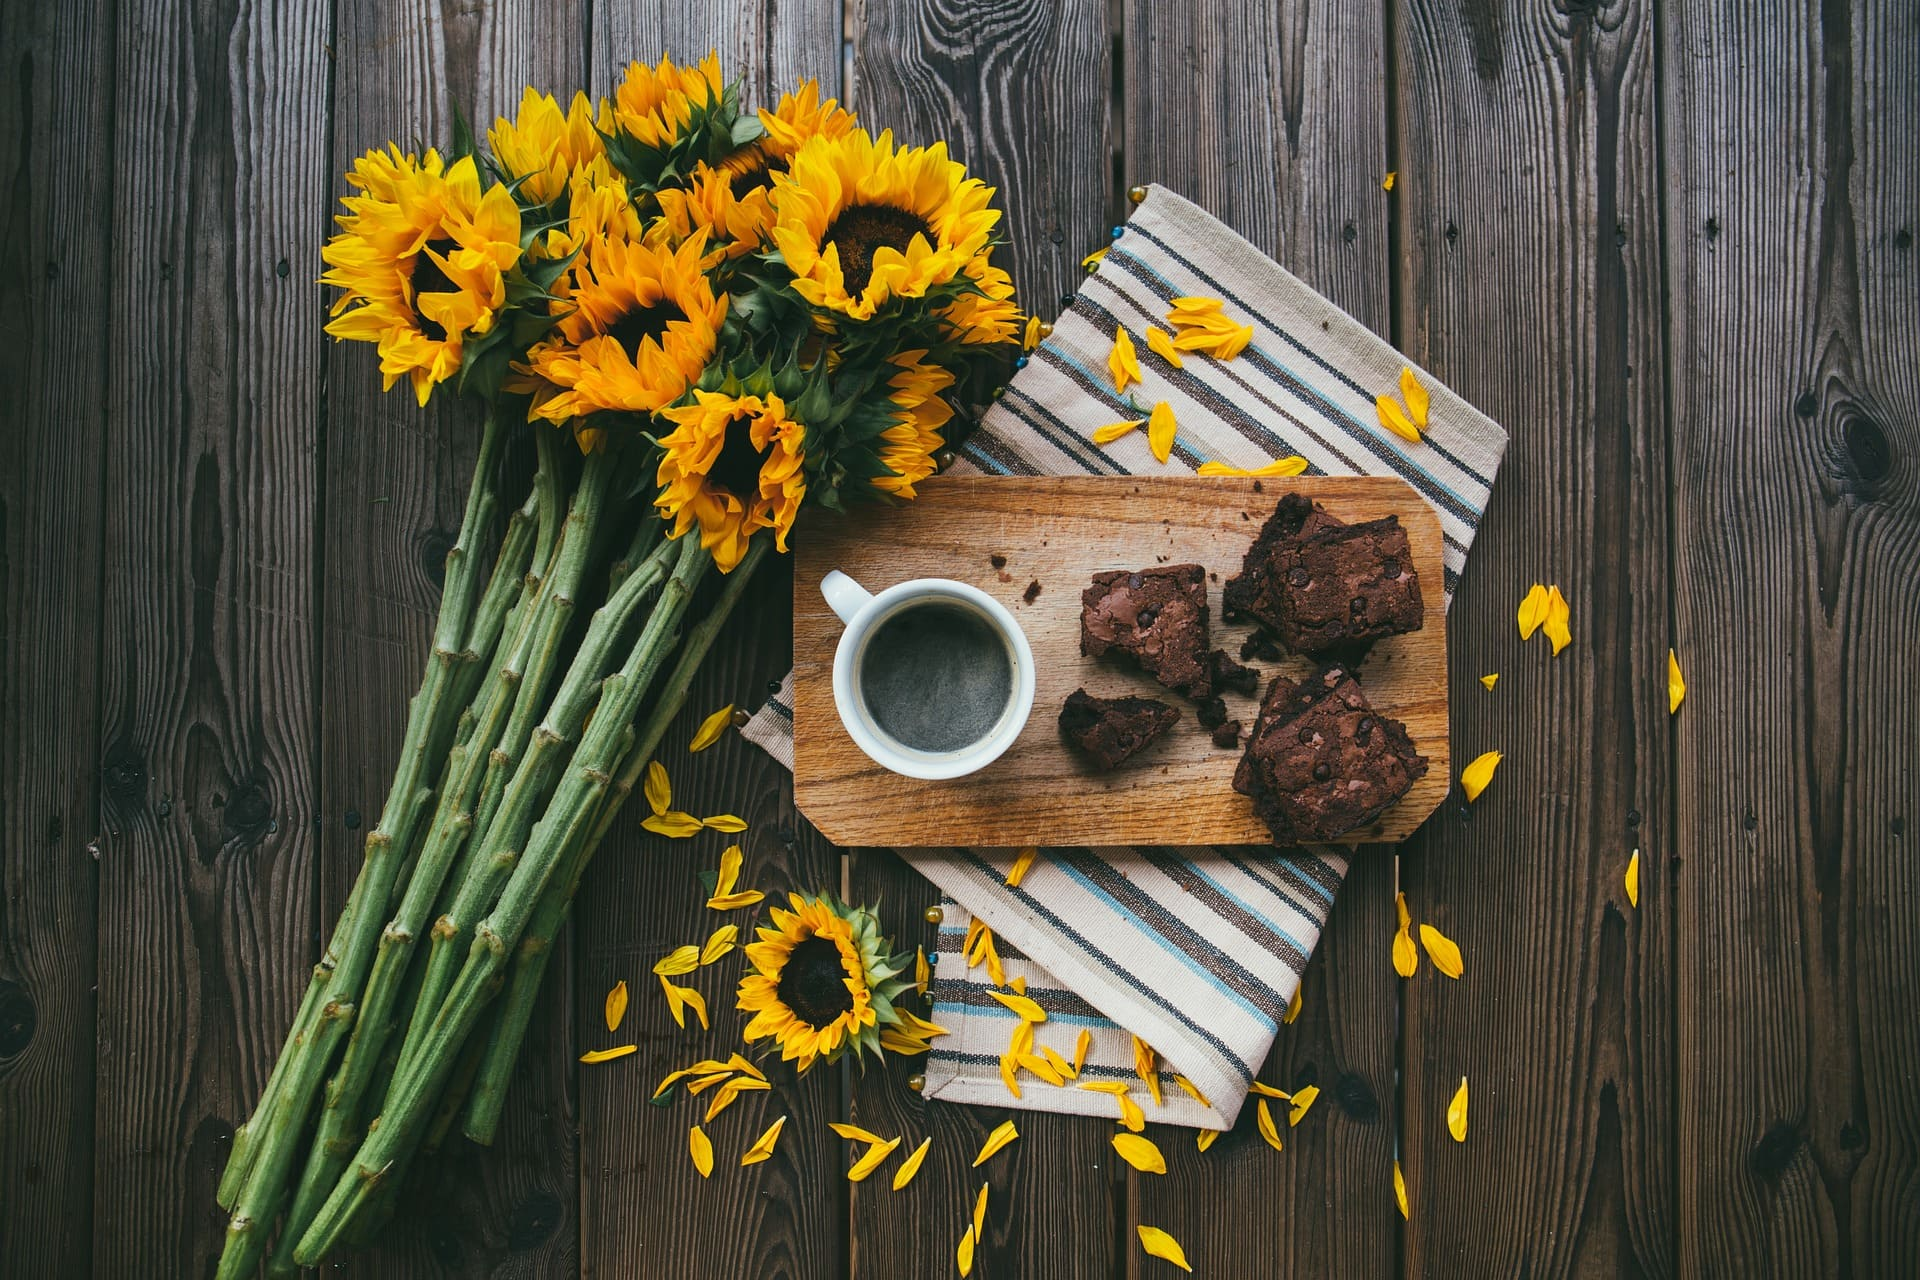 Brownies on a wooden tray with coffee and flowers on the side.  | Source: Pixabay